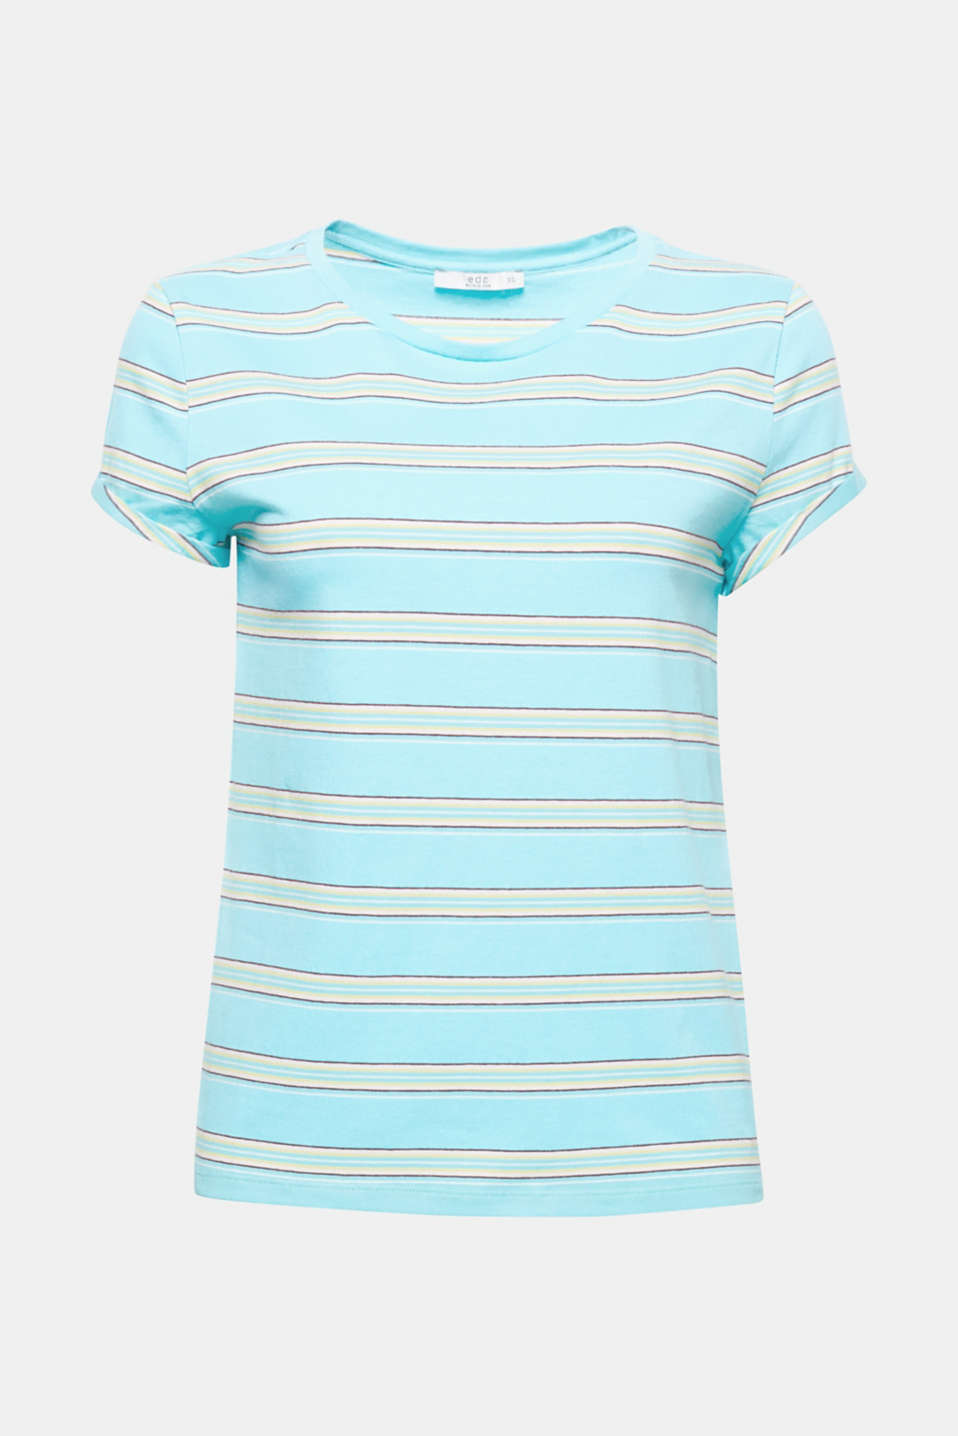 Fresh stripes with a comfy, stretchy fit: The trendy stripes add colour and makes this top a favourite for summer.